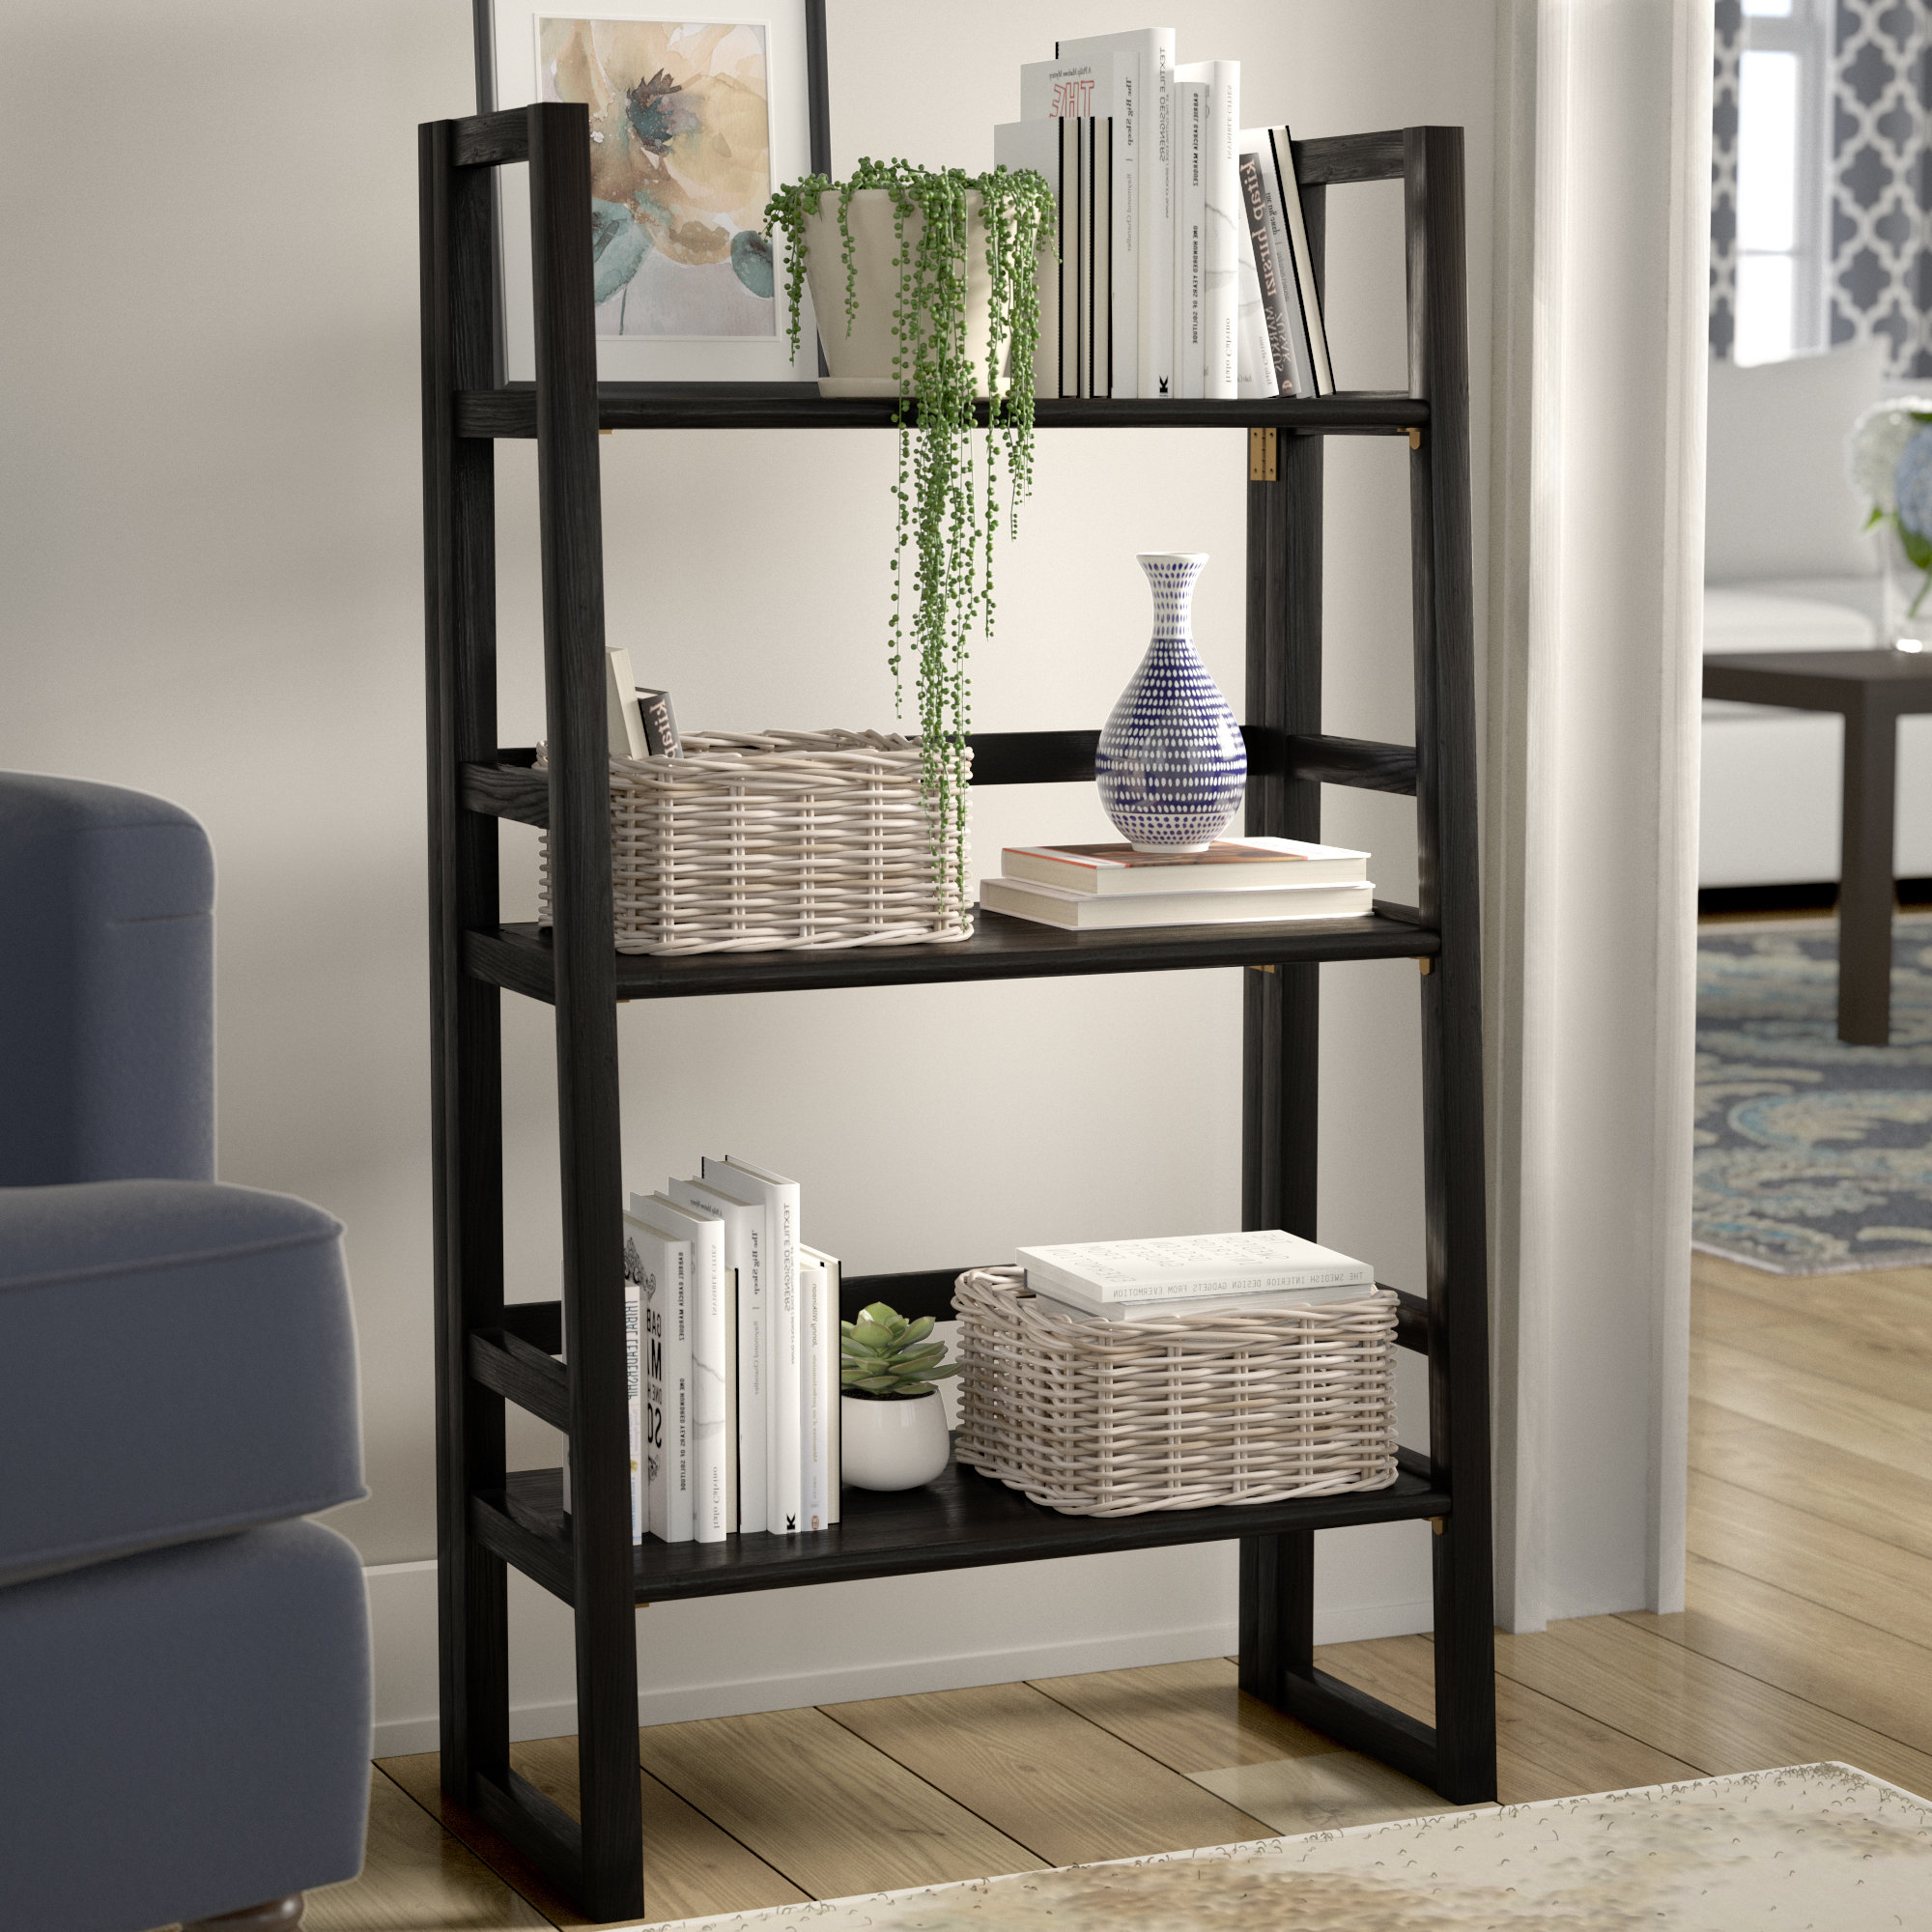 Annabesook Etagere Bookcase Pertaining To Well Known Annabesook Etagere Bookcases (Gallery 1 of 20)